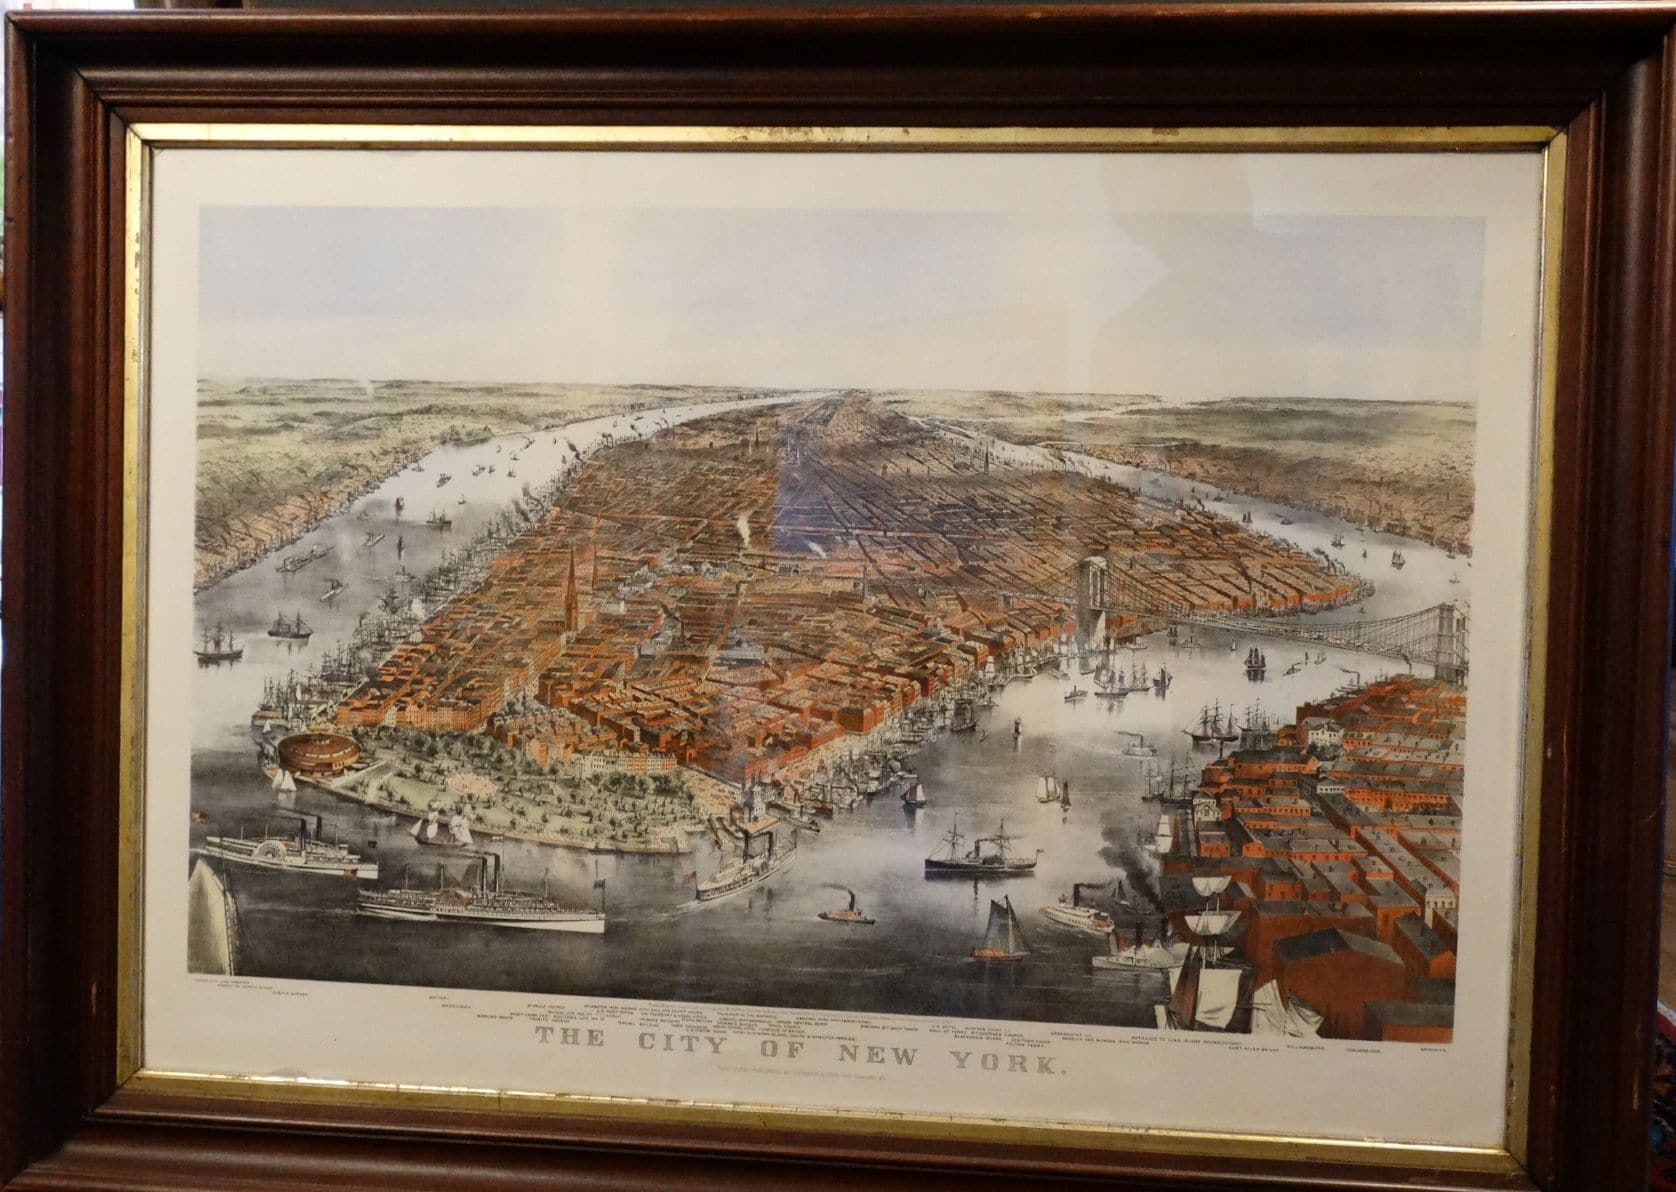 John William Hill View of New York Hand=Colored Engraving from 1855 in period frame.